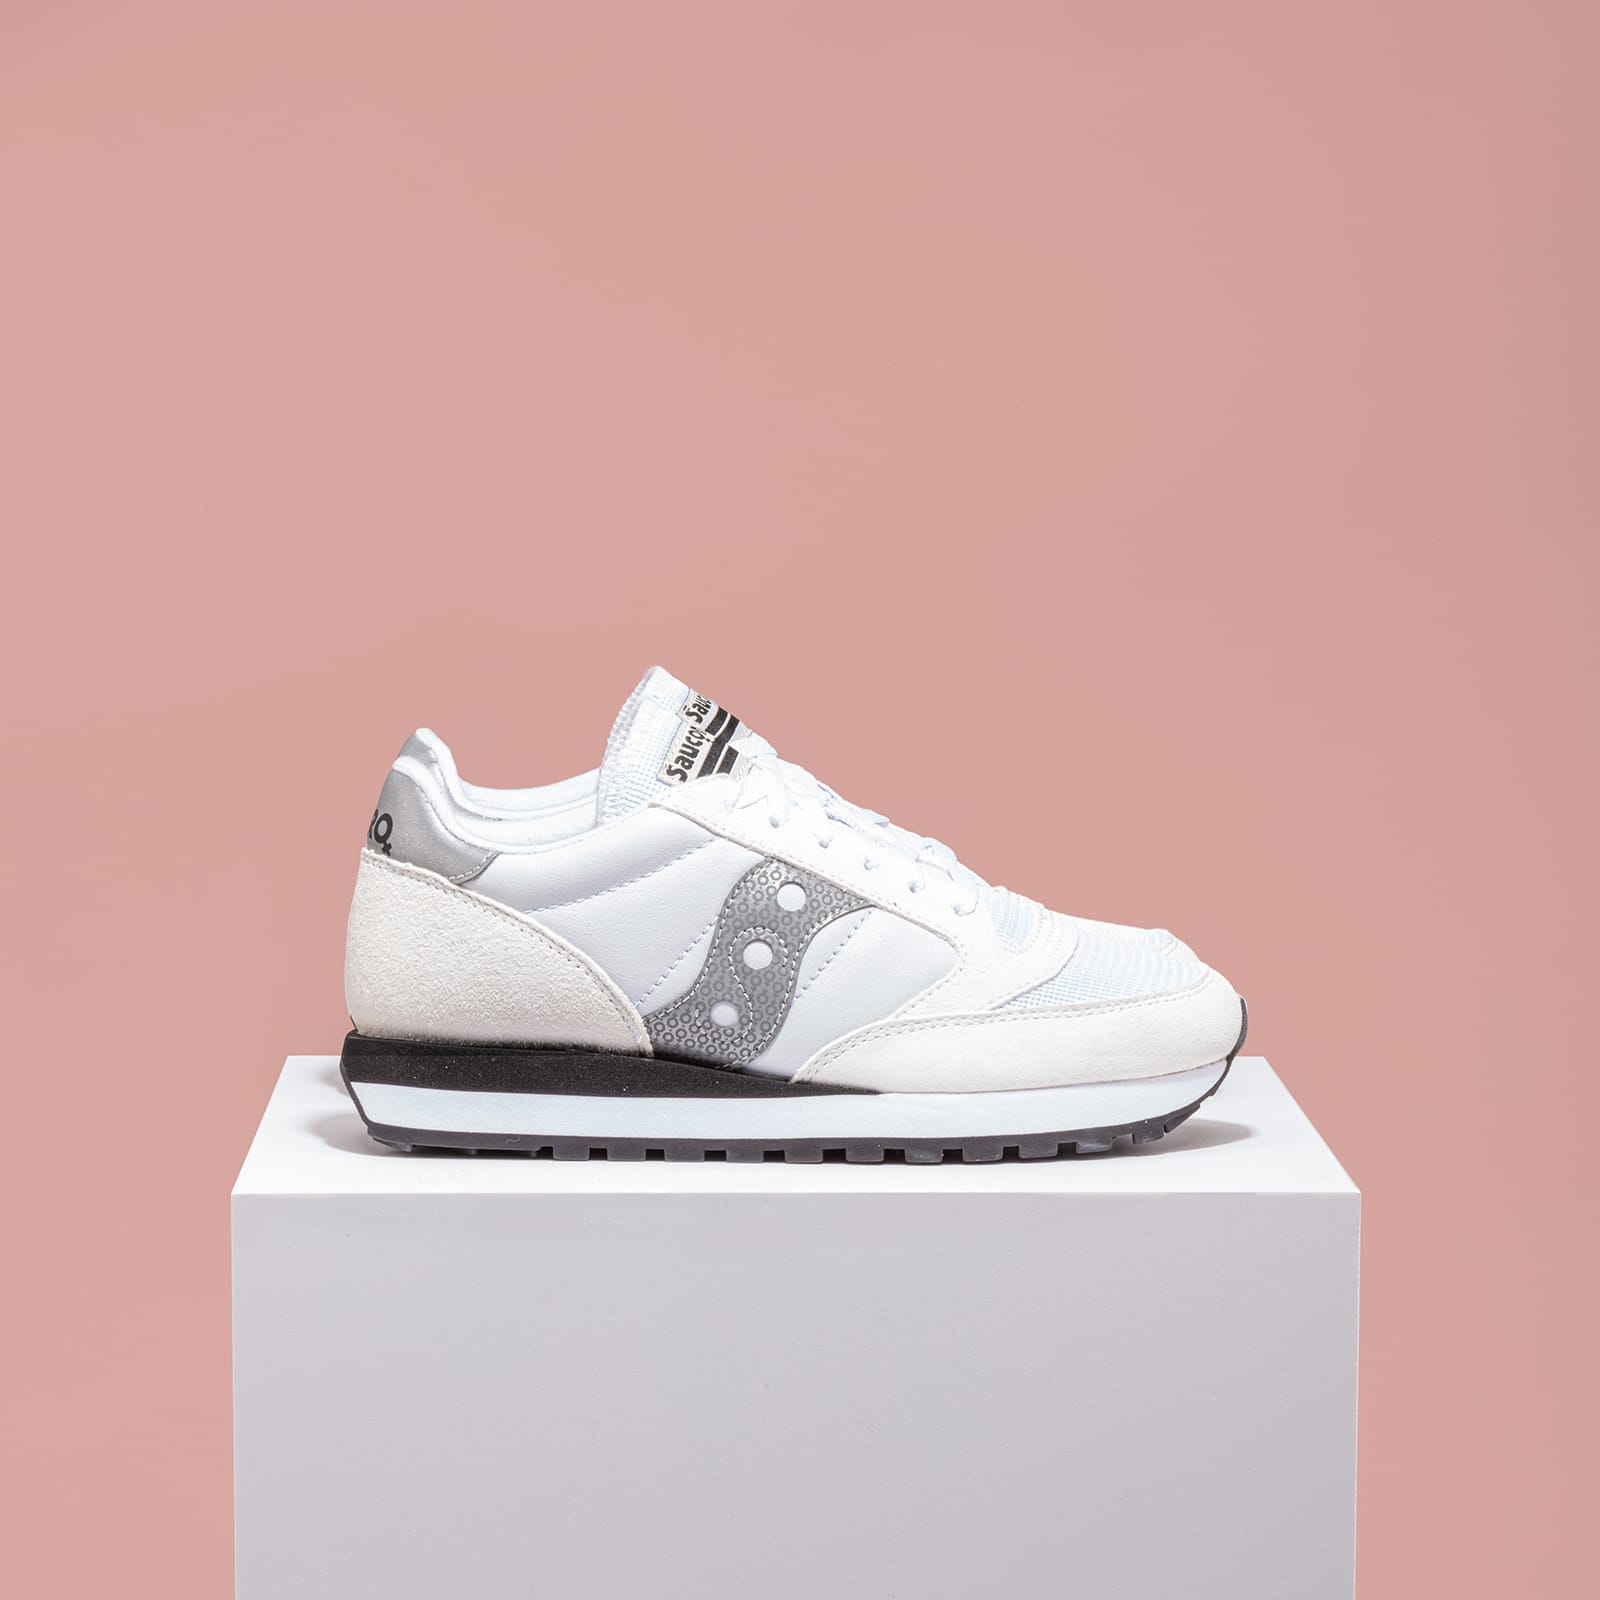 Saucony x Prinkshop Shop For A Cause